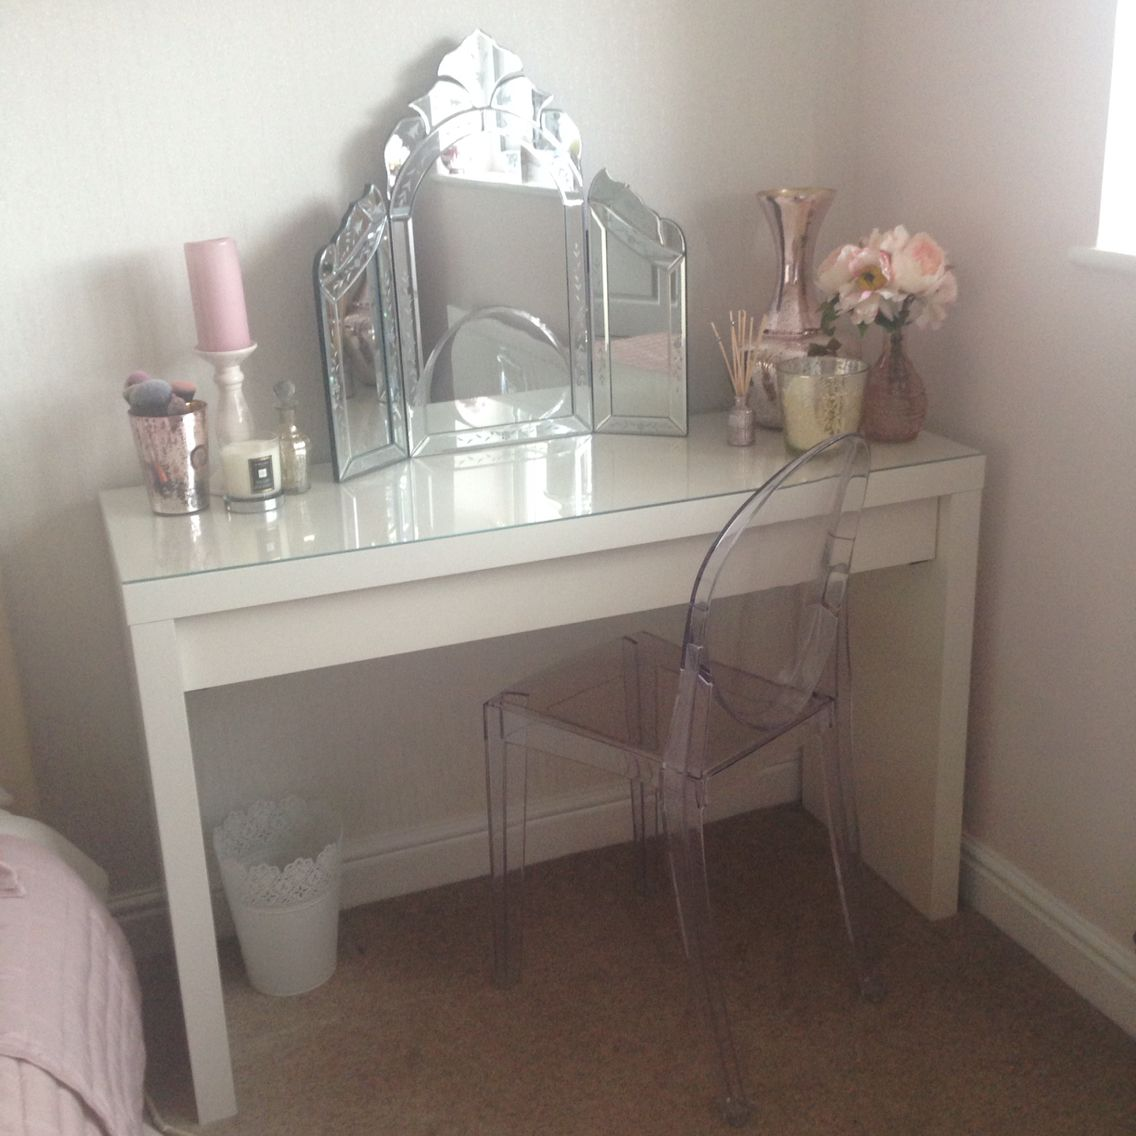 Makeup Vanity Chairs Lawn Academy New Ikea Malm And Ghost Chair So Pleased Such